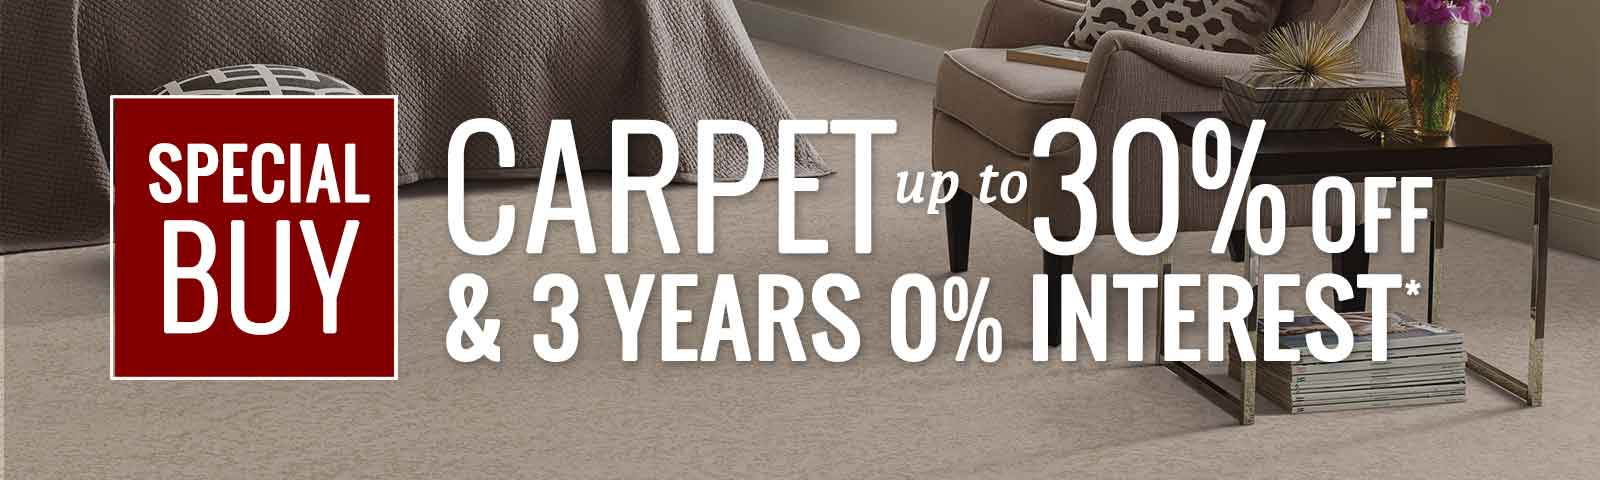 30% Savings on Select Carpet, Pittsburgh